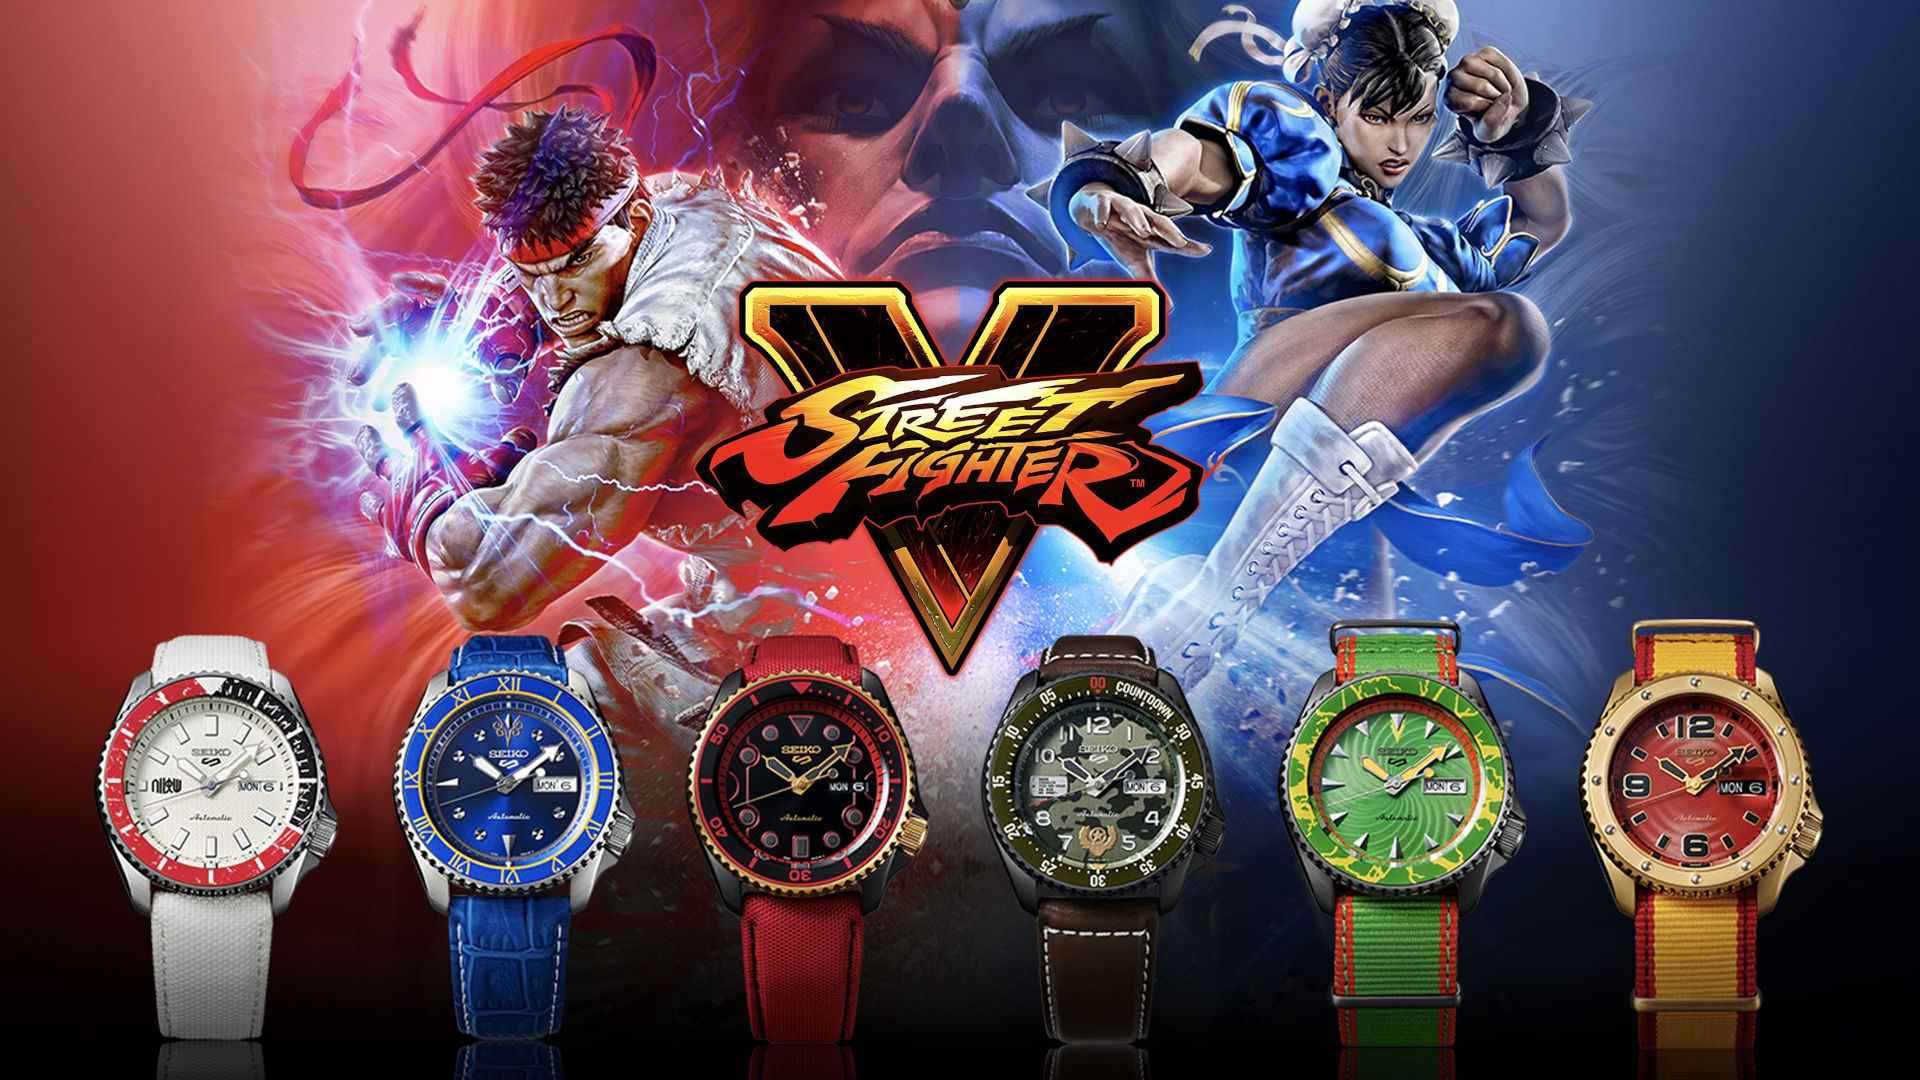 Seiko 5 Sports Versus Street Fighter V… Ready, fight!